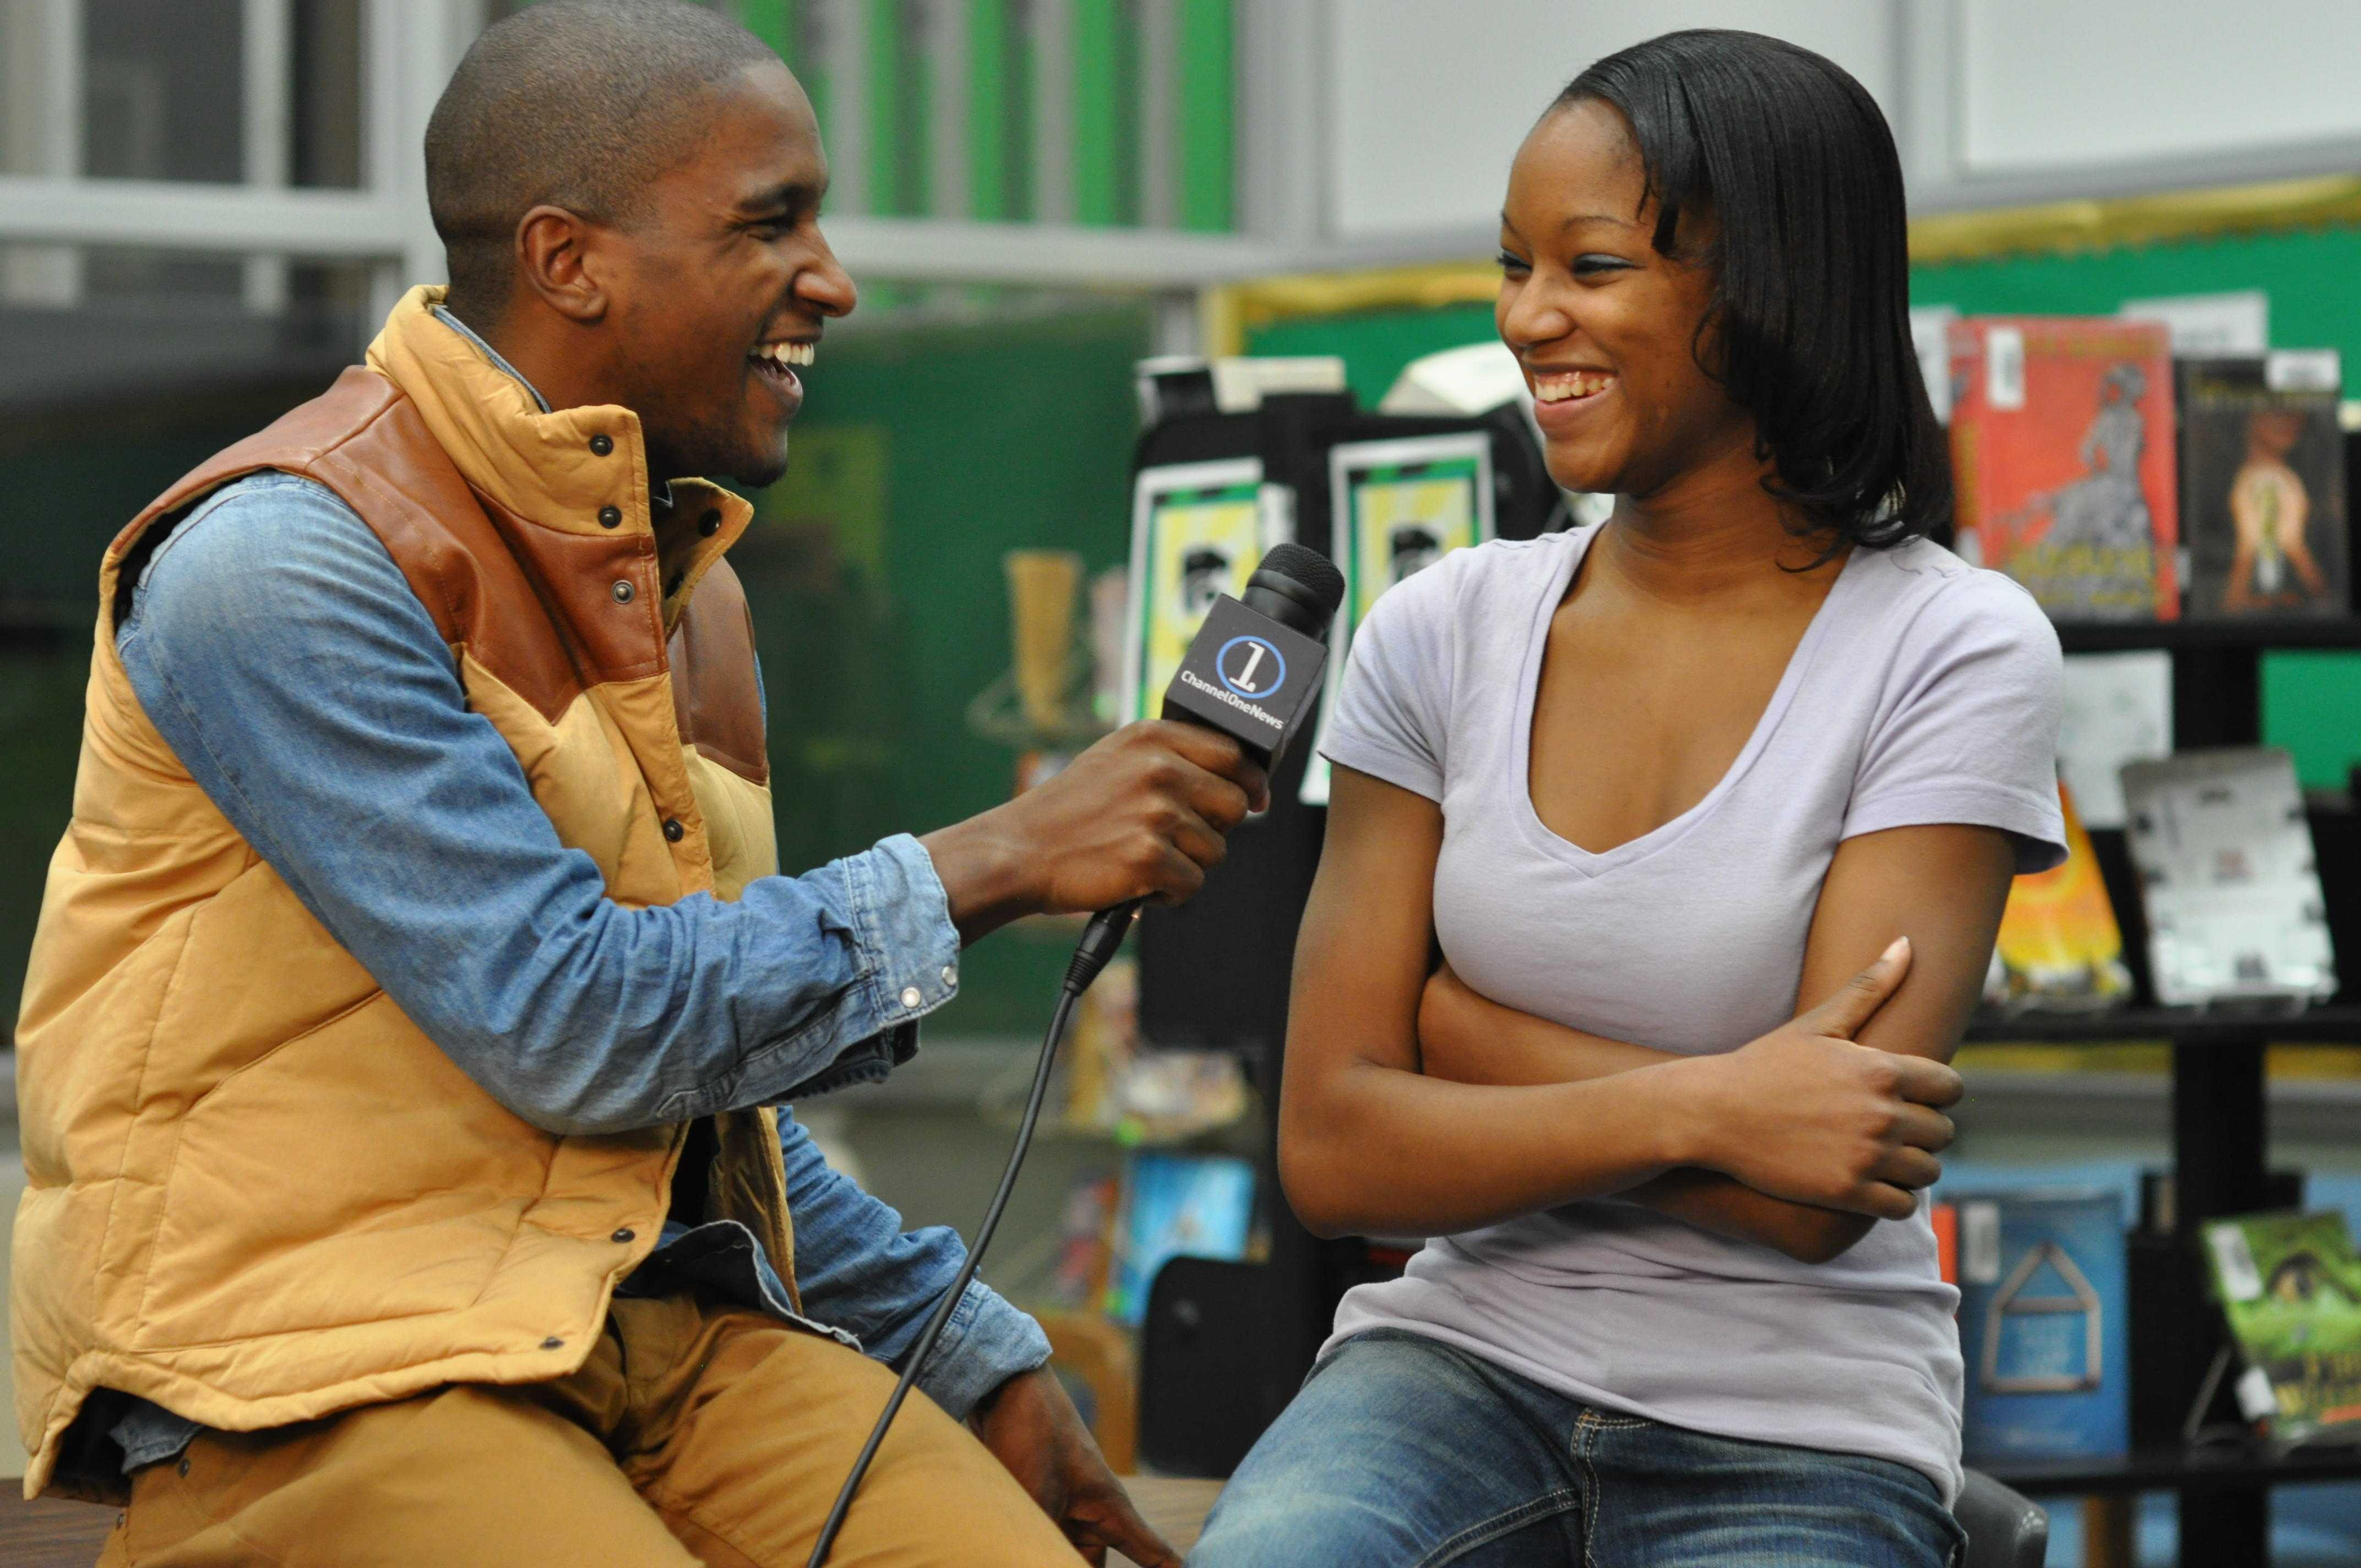 Tyeisha Conwell, sr., laughs along with Scott Evans during her interview.